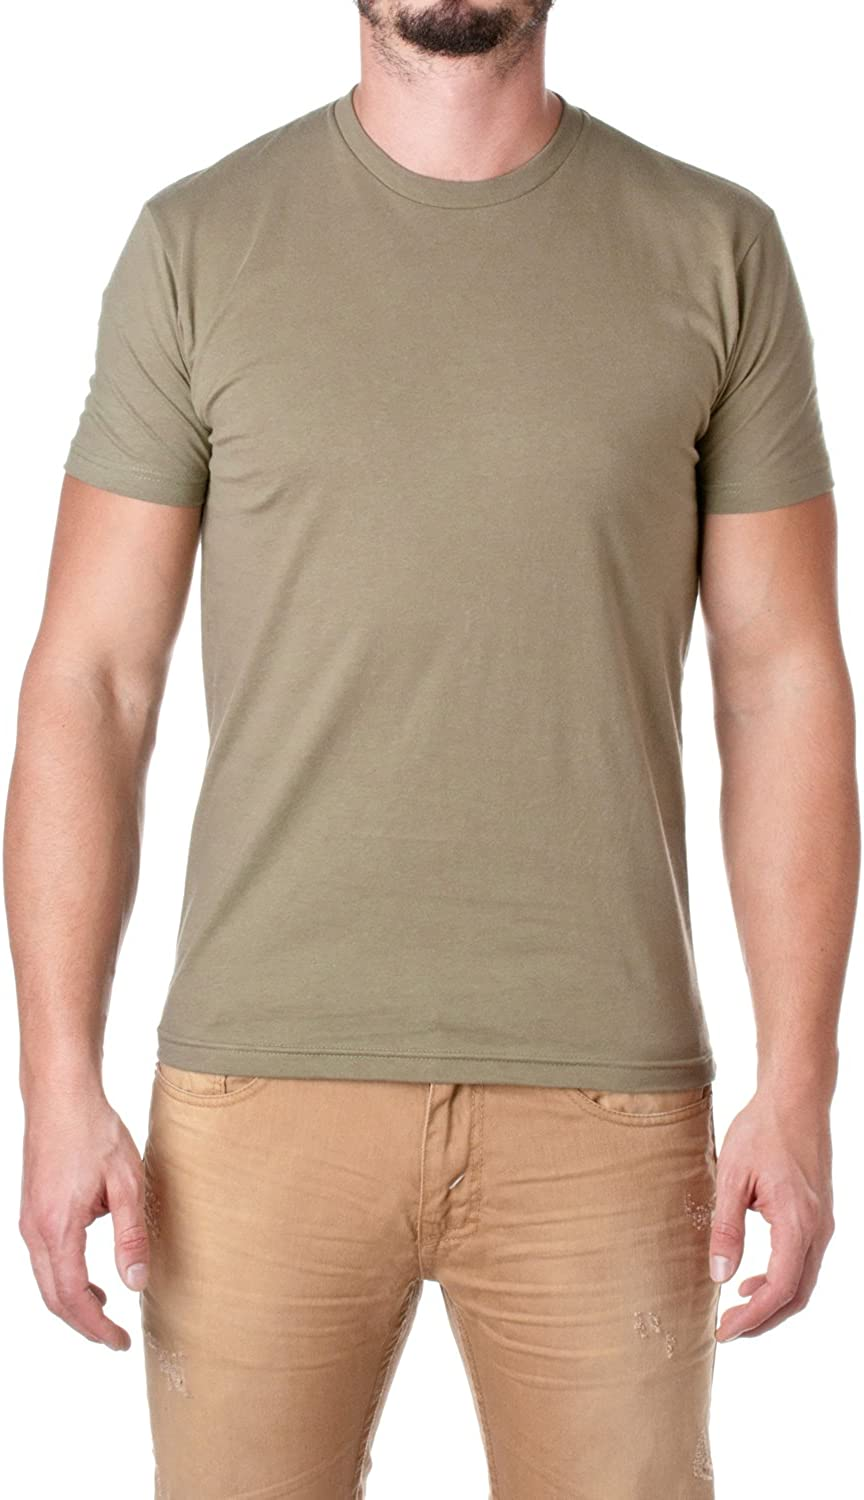 Next Level Mens Premium Short-Sleeve Brand new Crew Fitted shop T-Shirt